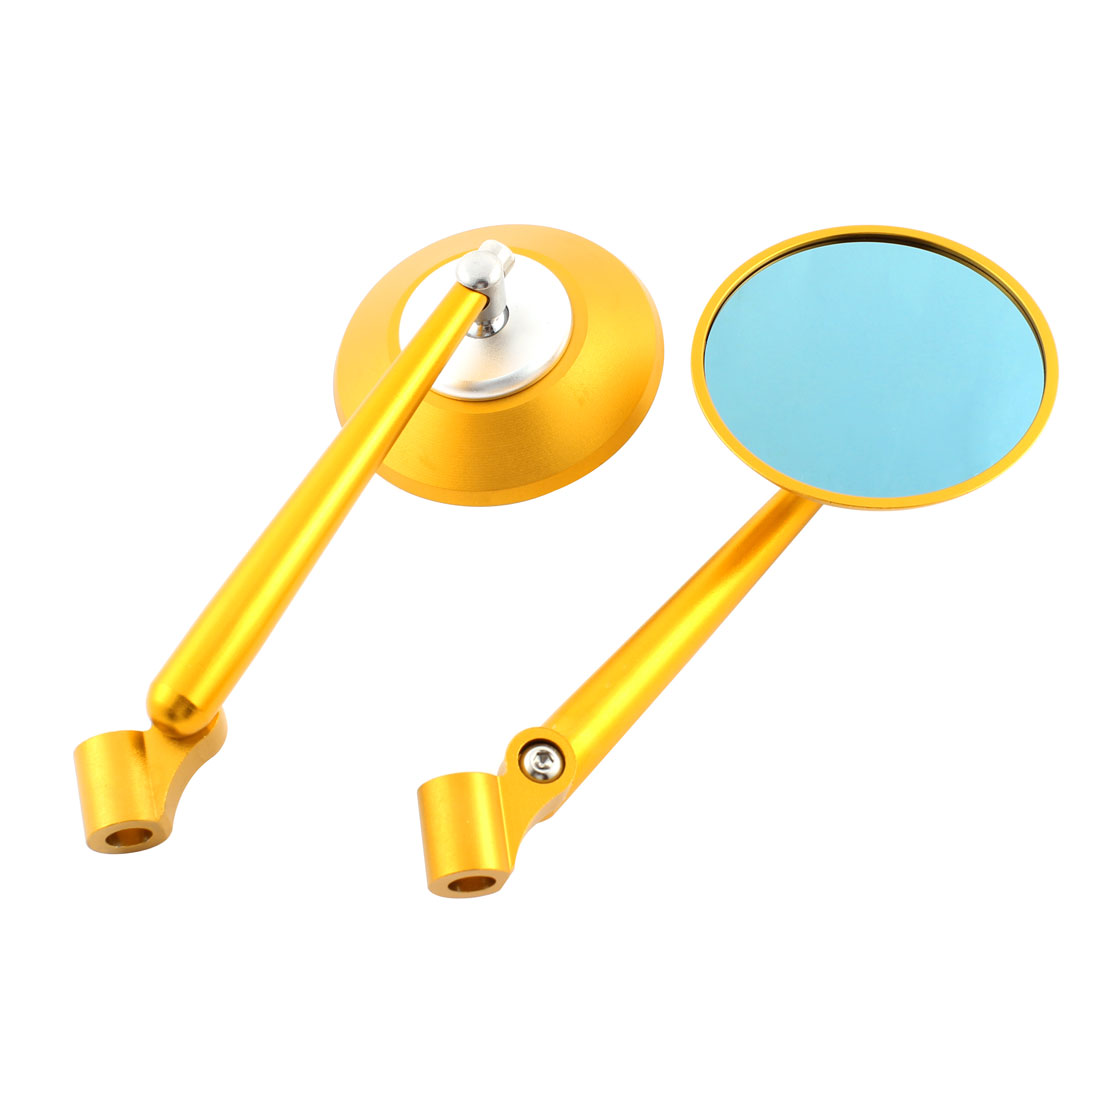 2 Pcs Round Side 360 Degree Wide Angle Motorcycle Blindspot Rearview Mirror Gold Tone